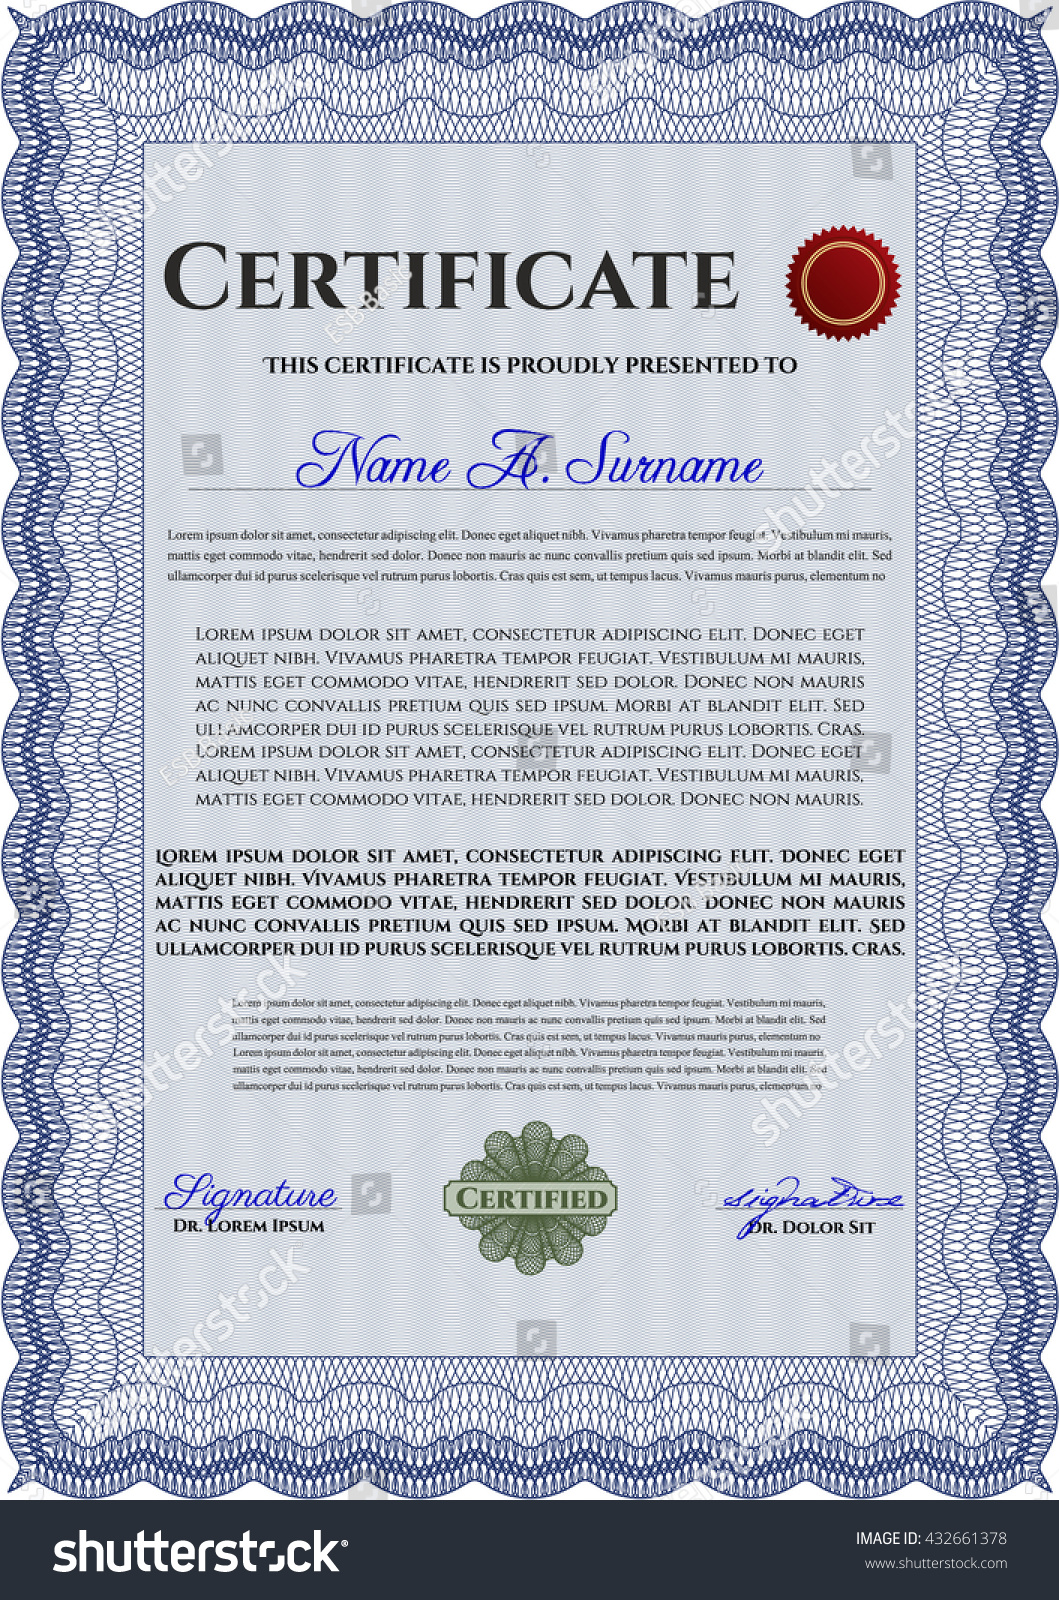 Certificate Template Eps10 Jpg Of Achievement Diploma Vector